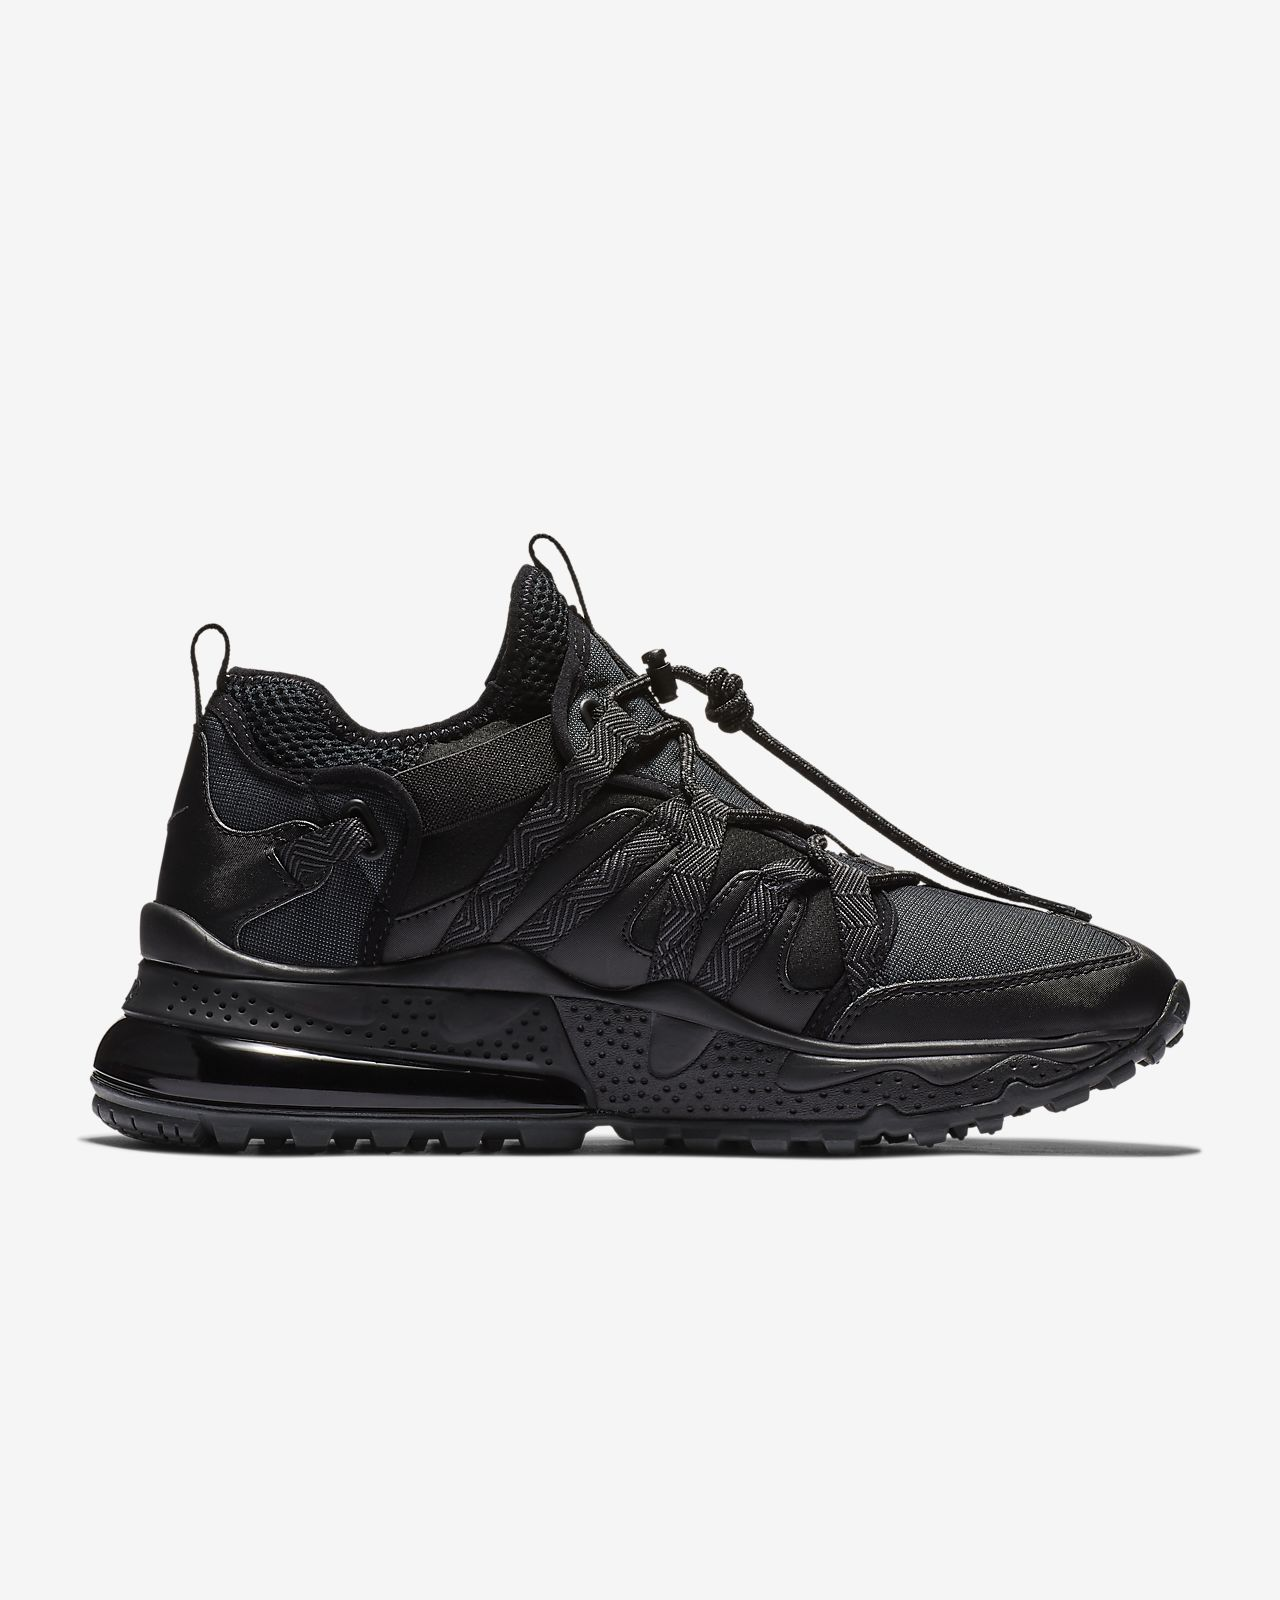 399b4120d3c Nike Air Max 270 Bowfin Men s Shoe. Nike.com